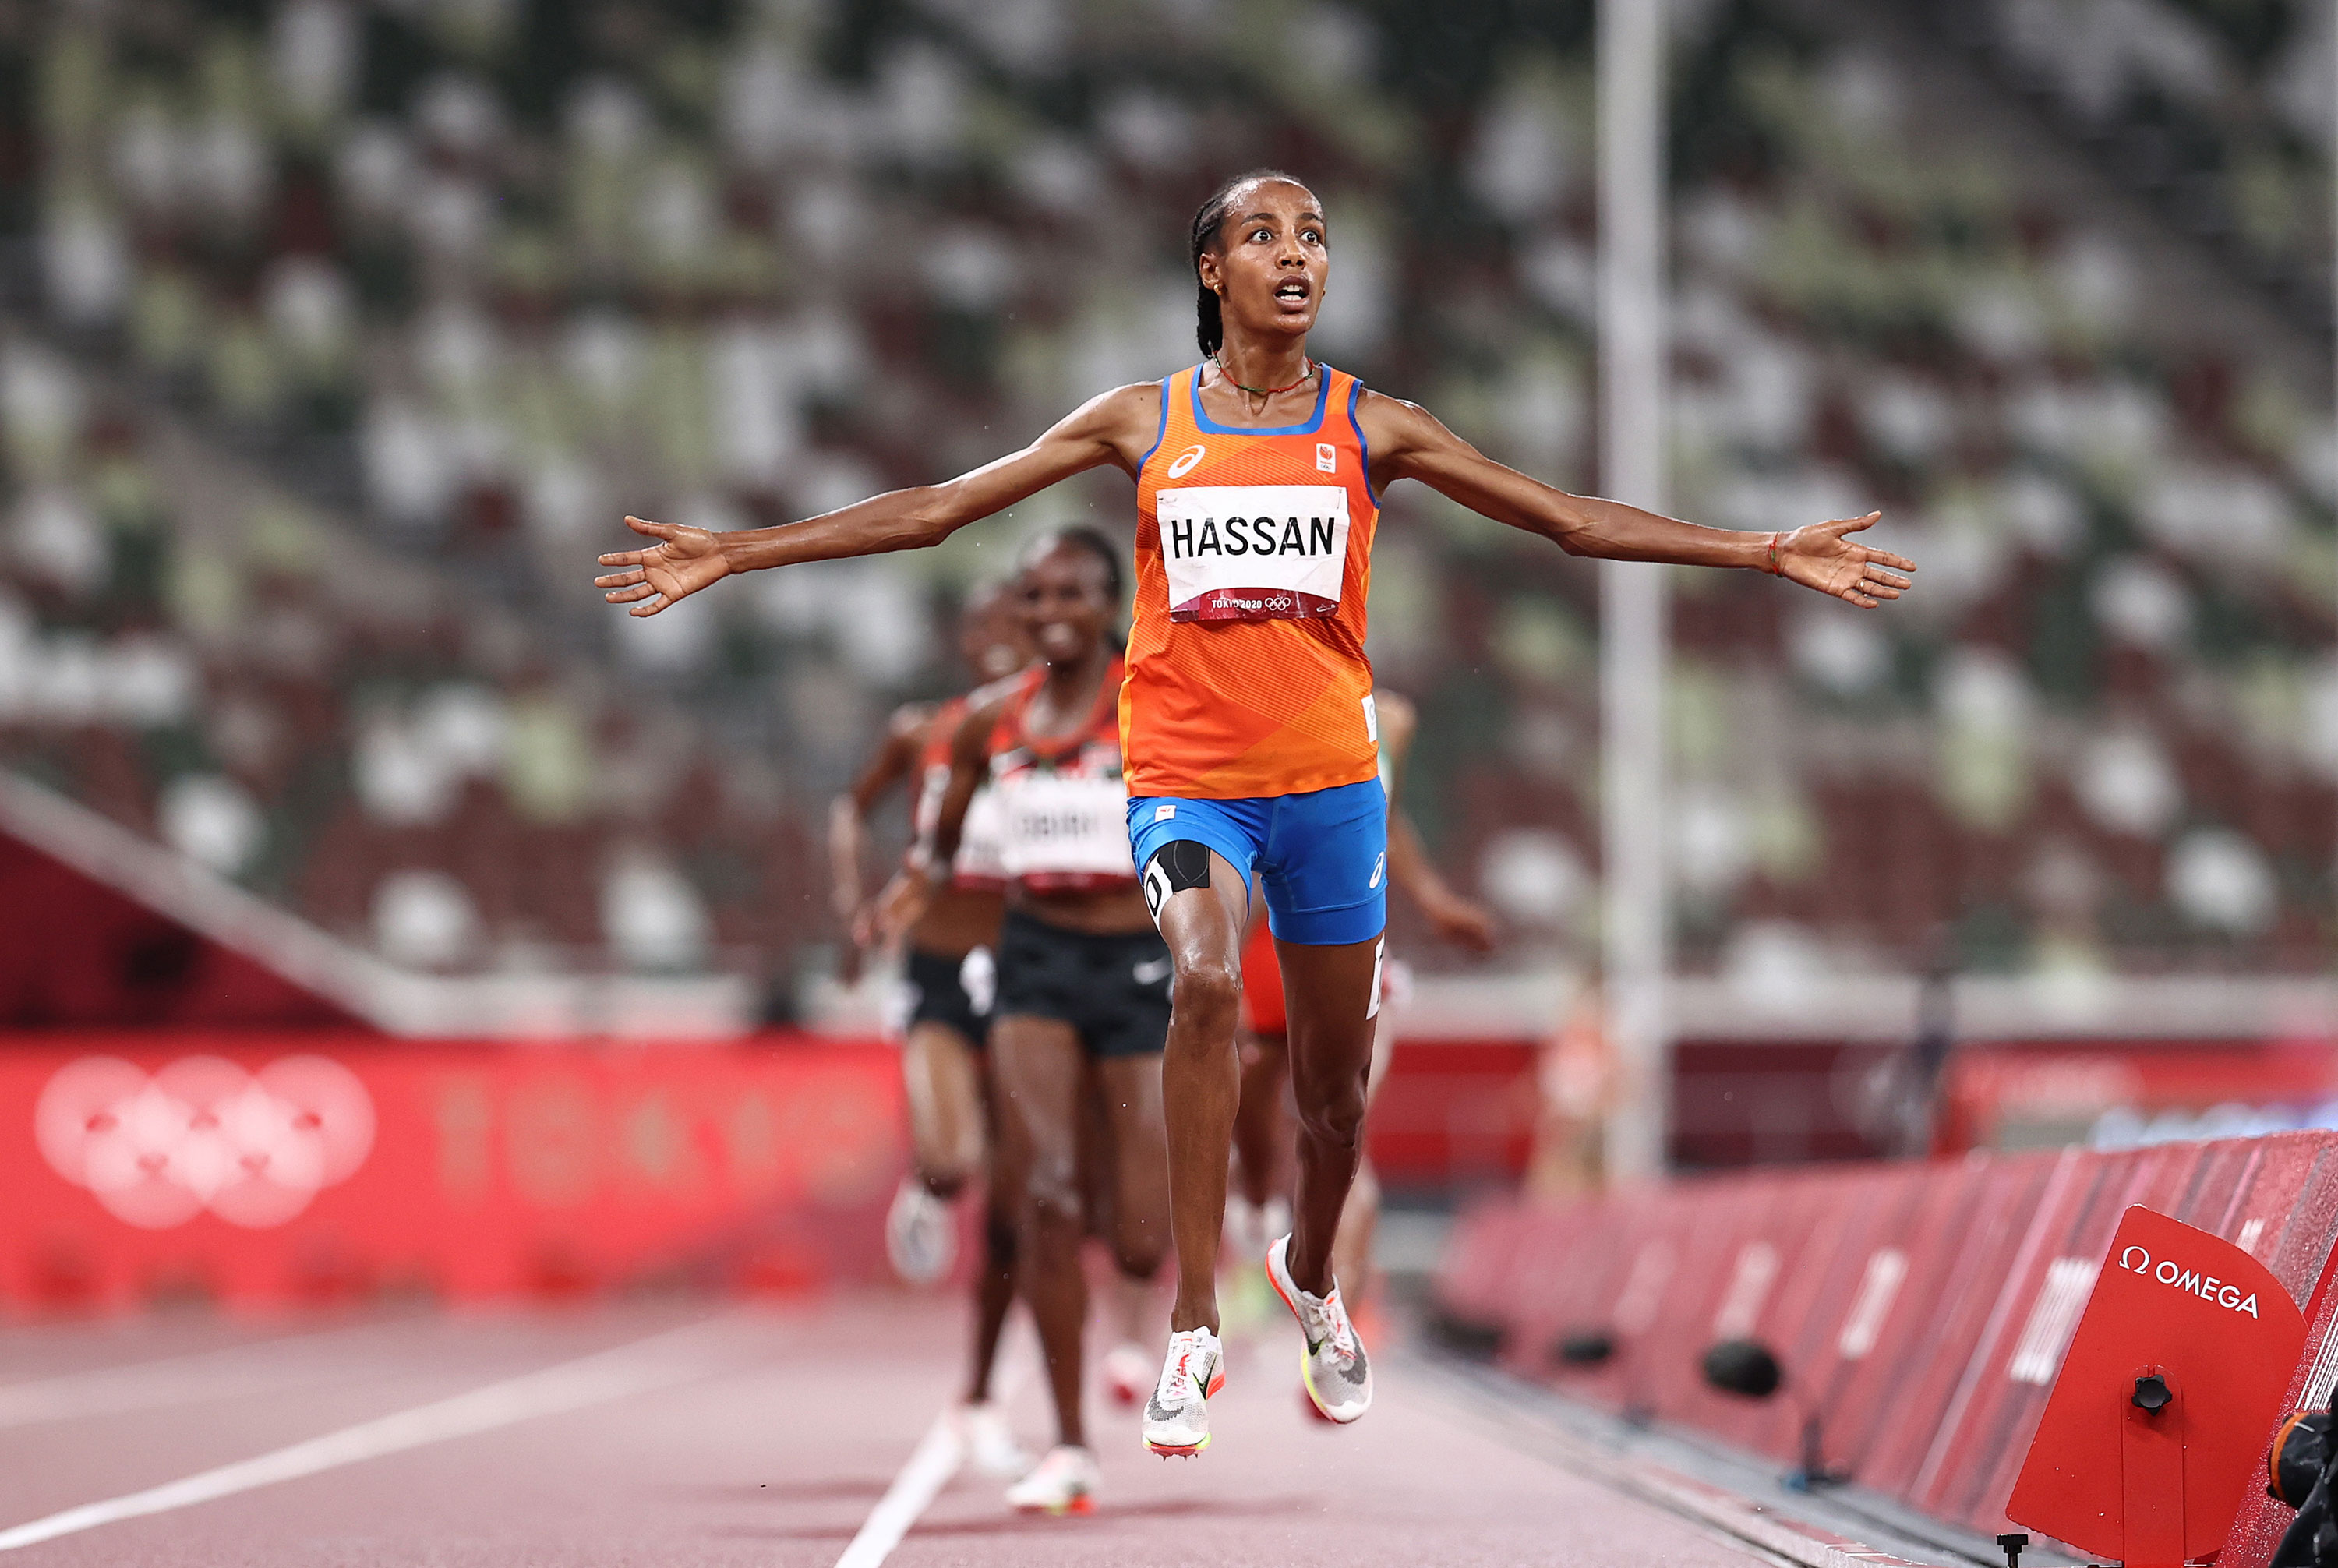 Sifan Hassan of Netherlands reacts as she wins gold in the 5000-meter final on August 2.